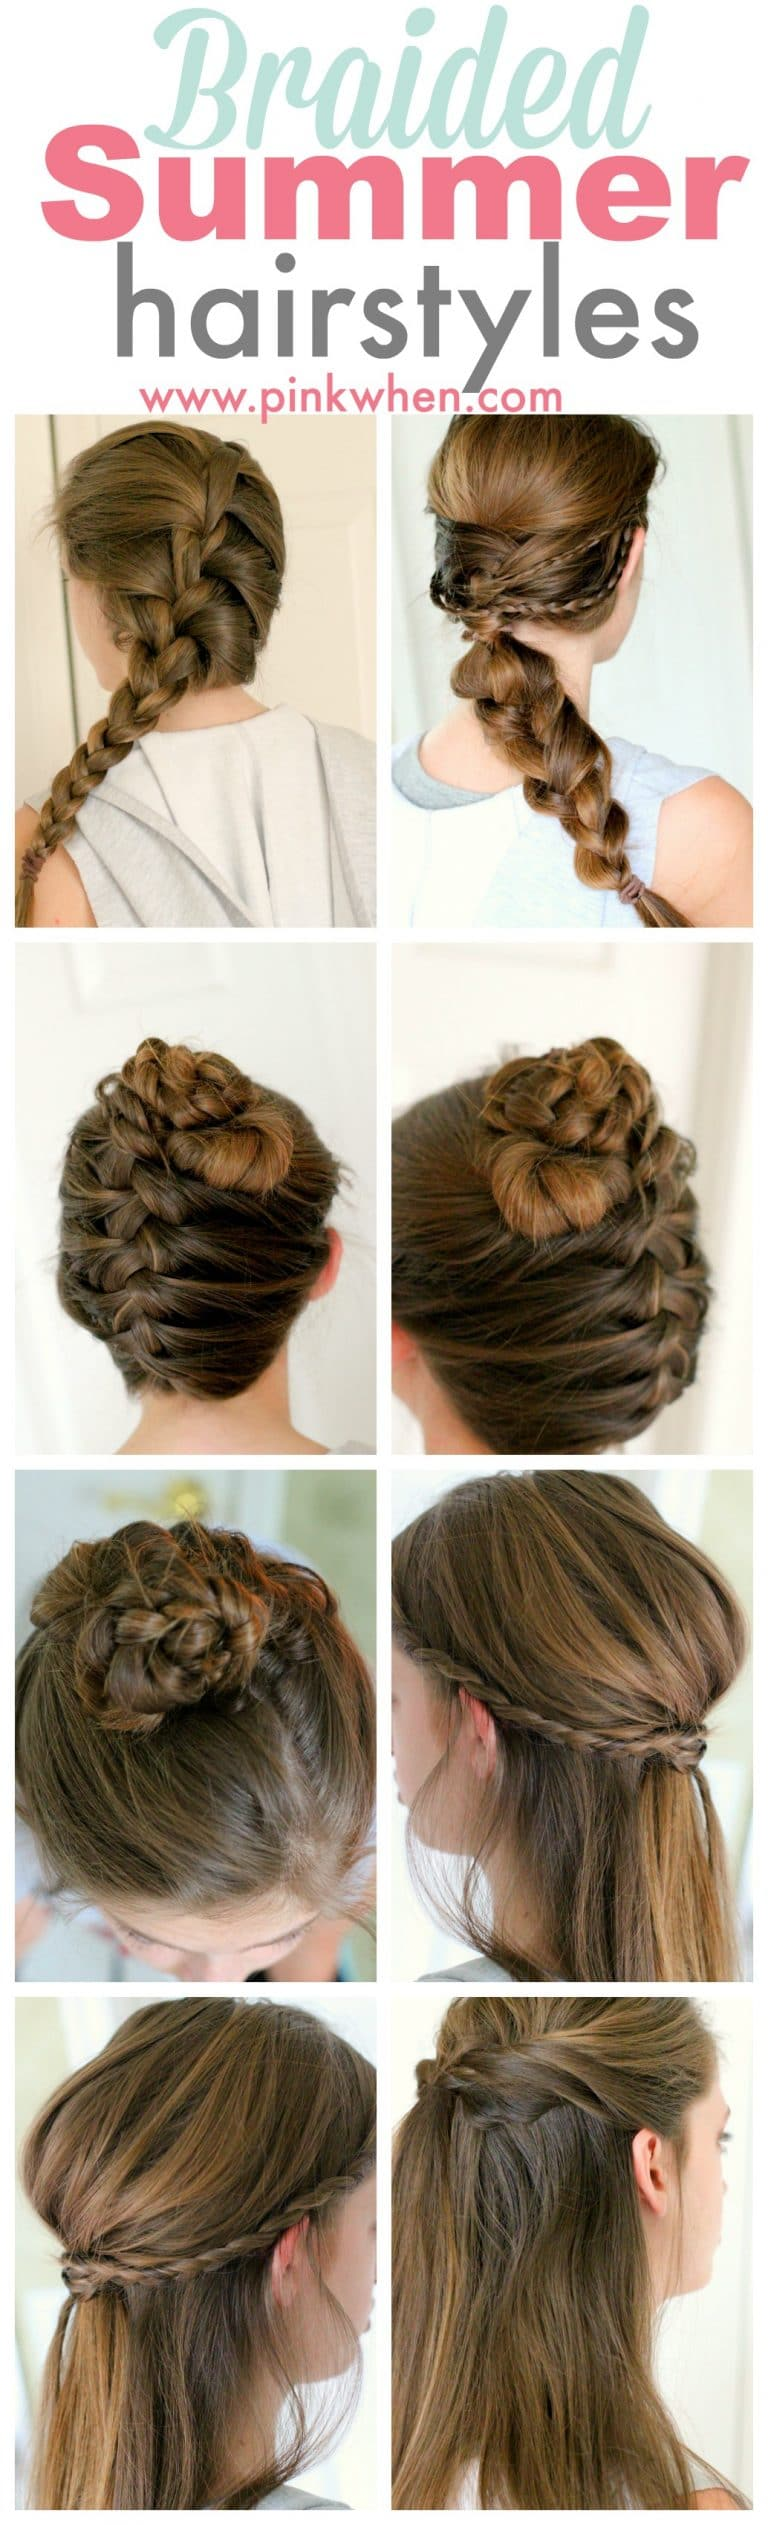 summer hair up styles braided summer hairstyle ideas pinkwhen 3406